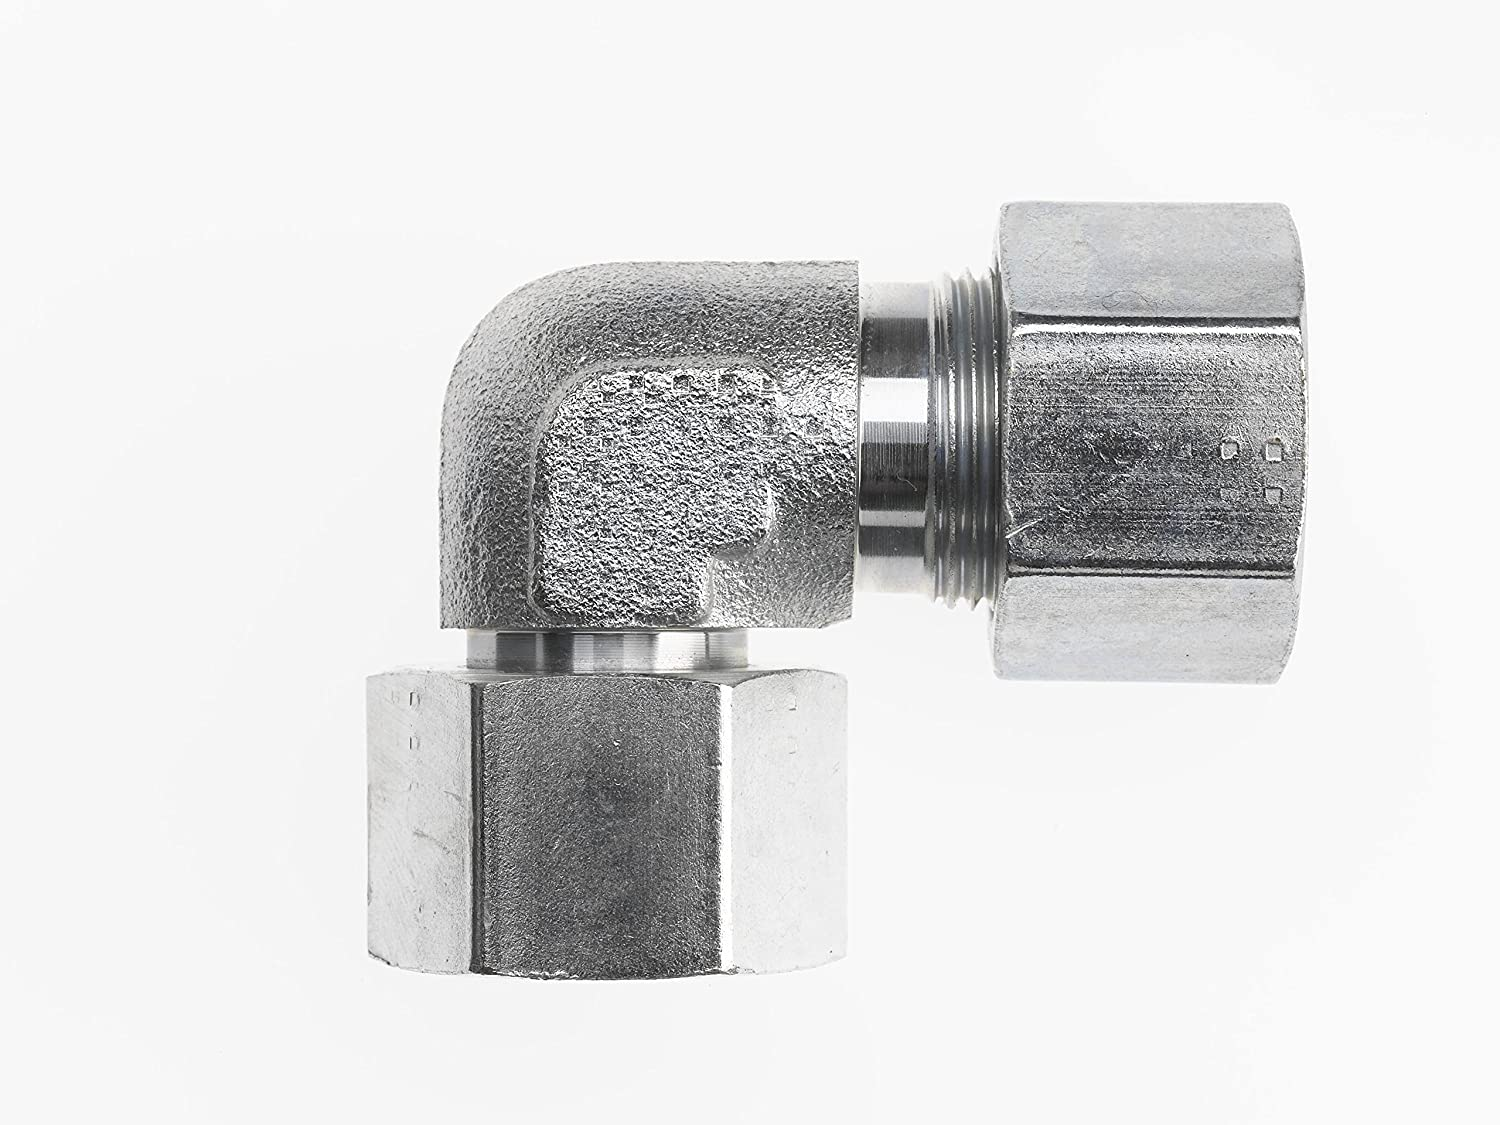 M36 x 2 NPT x M36 x 2 NPT Thread 28 mm x 28 mm x Tube Size Brennan Industries D8269-L28-28-NBR Steel Adjustable 90 Degree Elbow Bite with O-Ring